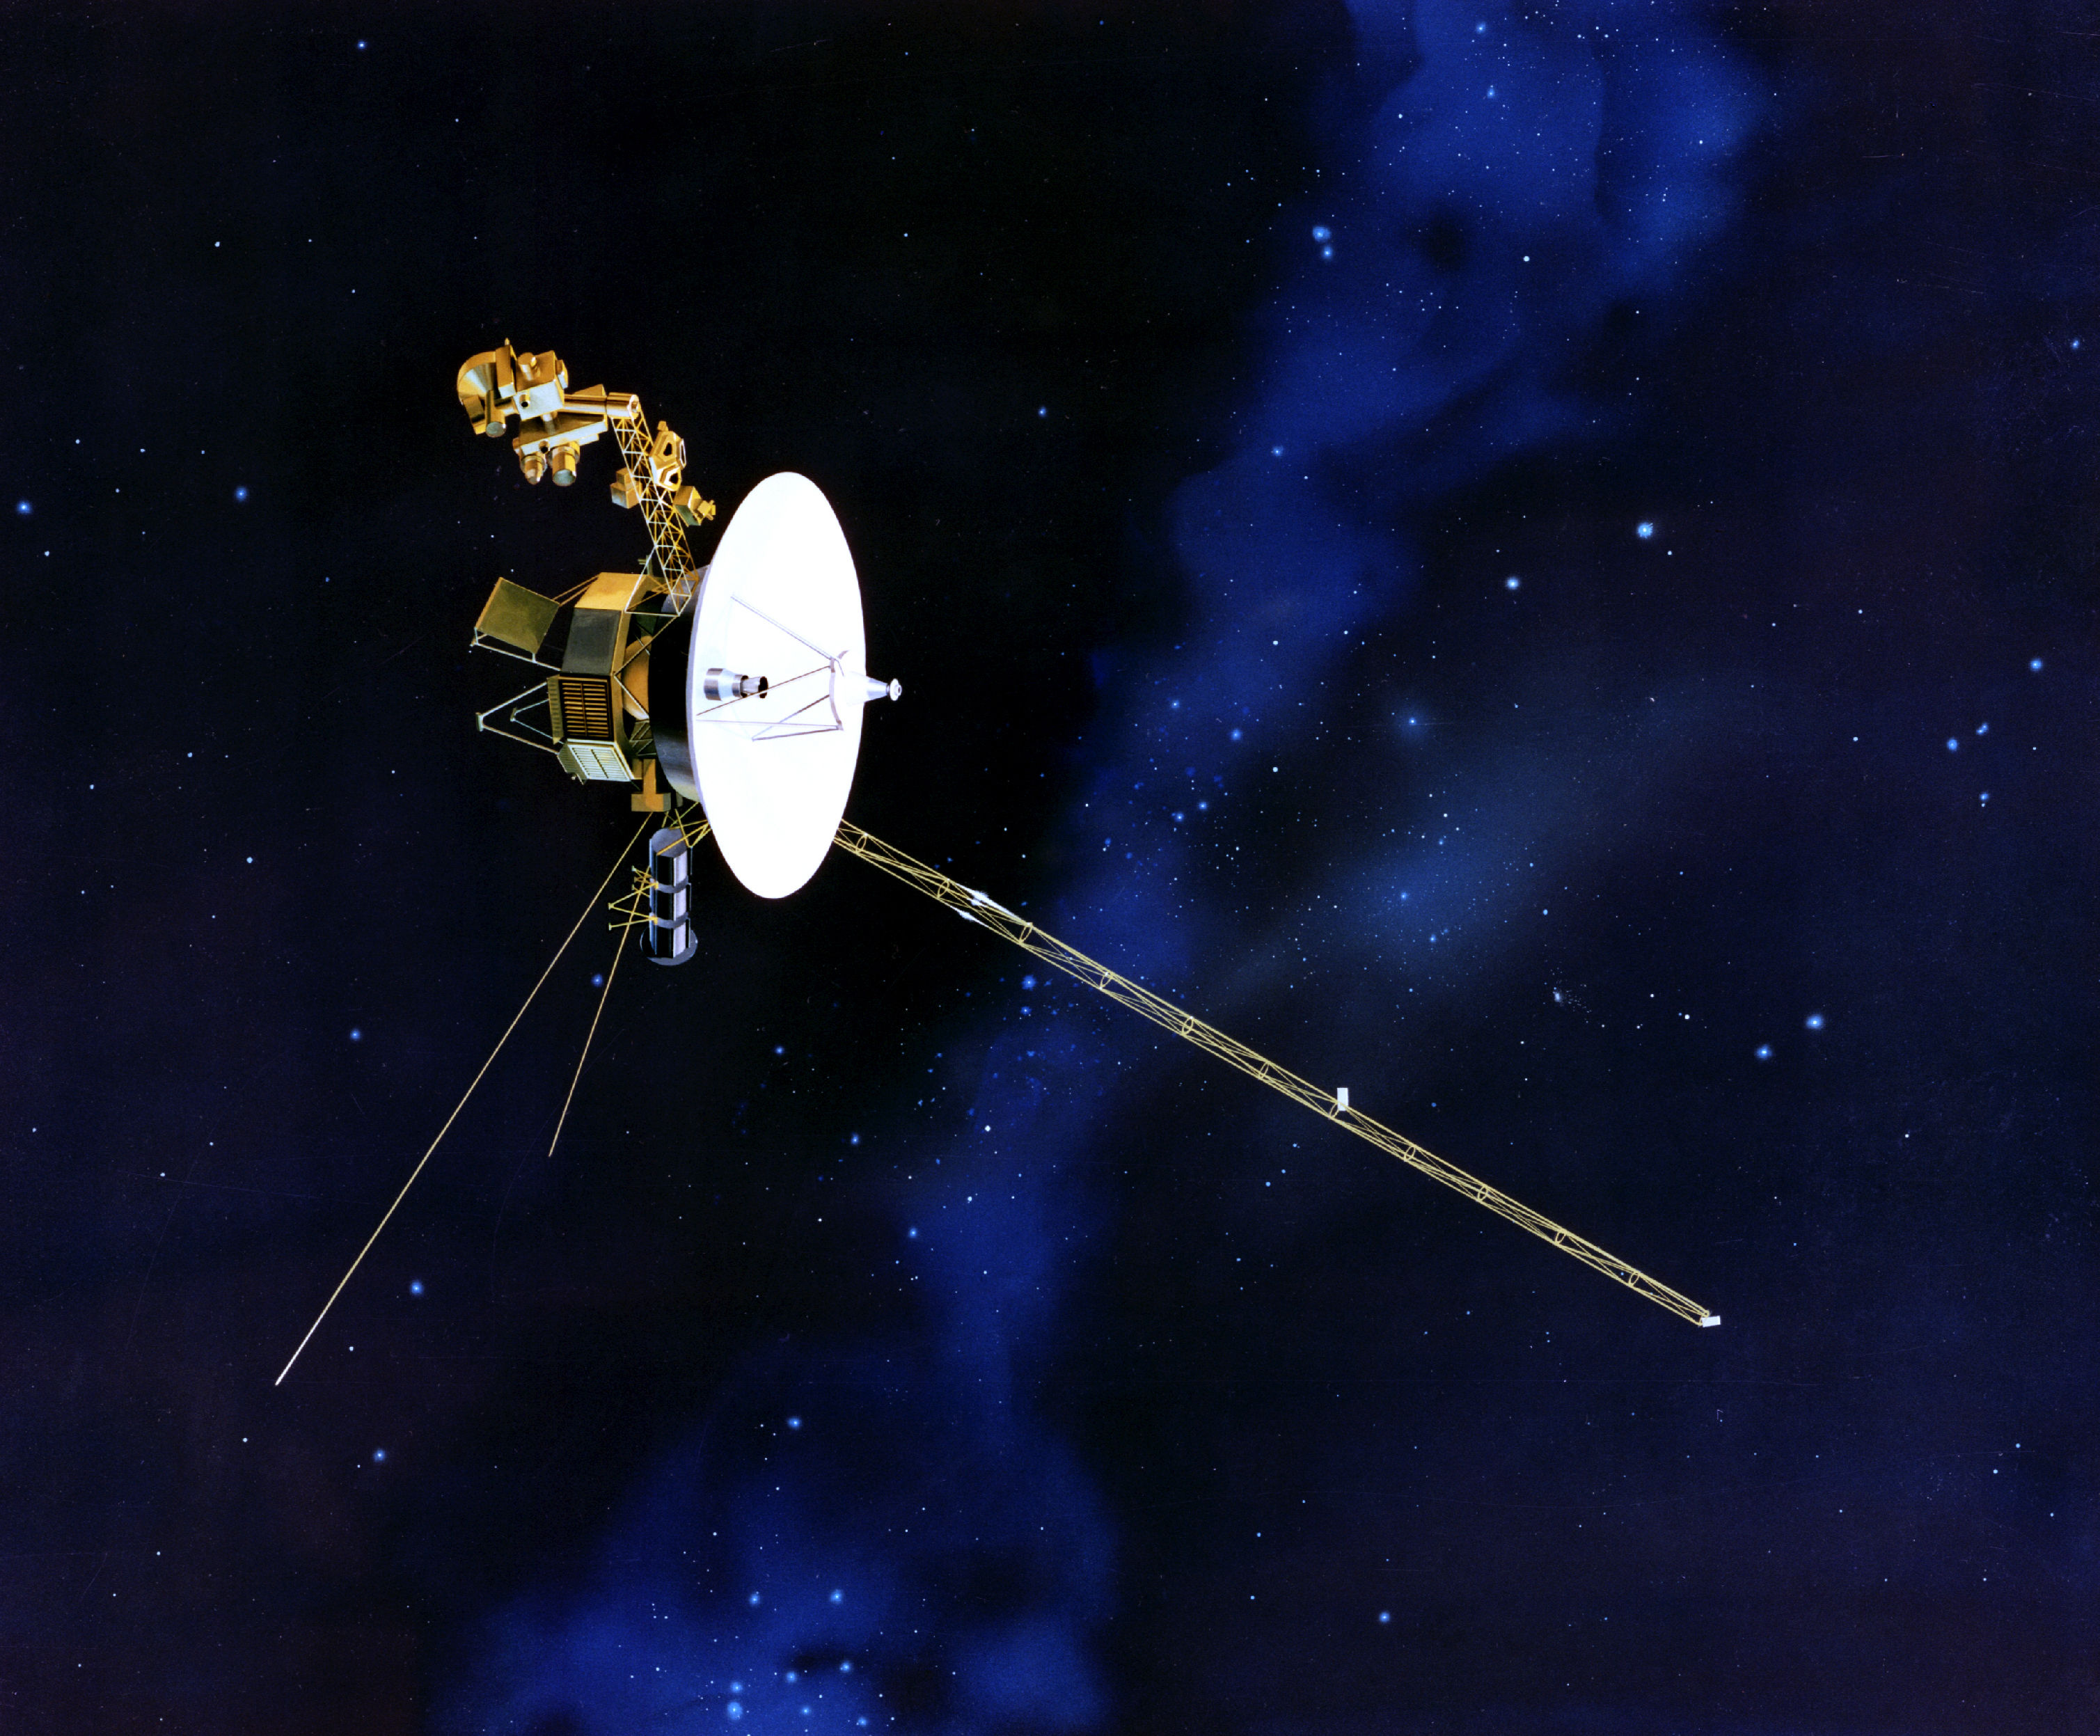 voyager space mission - photo #2